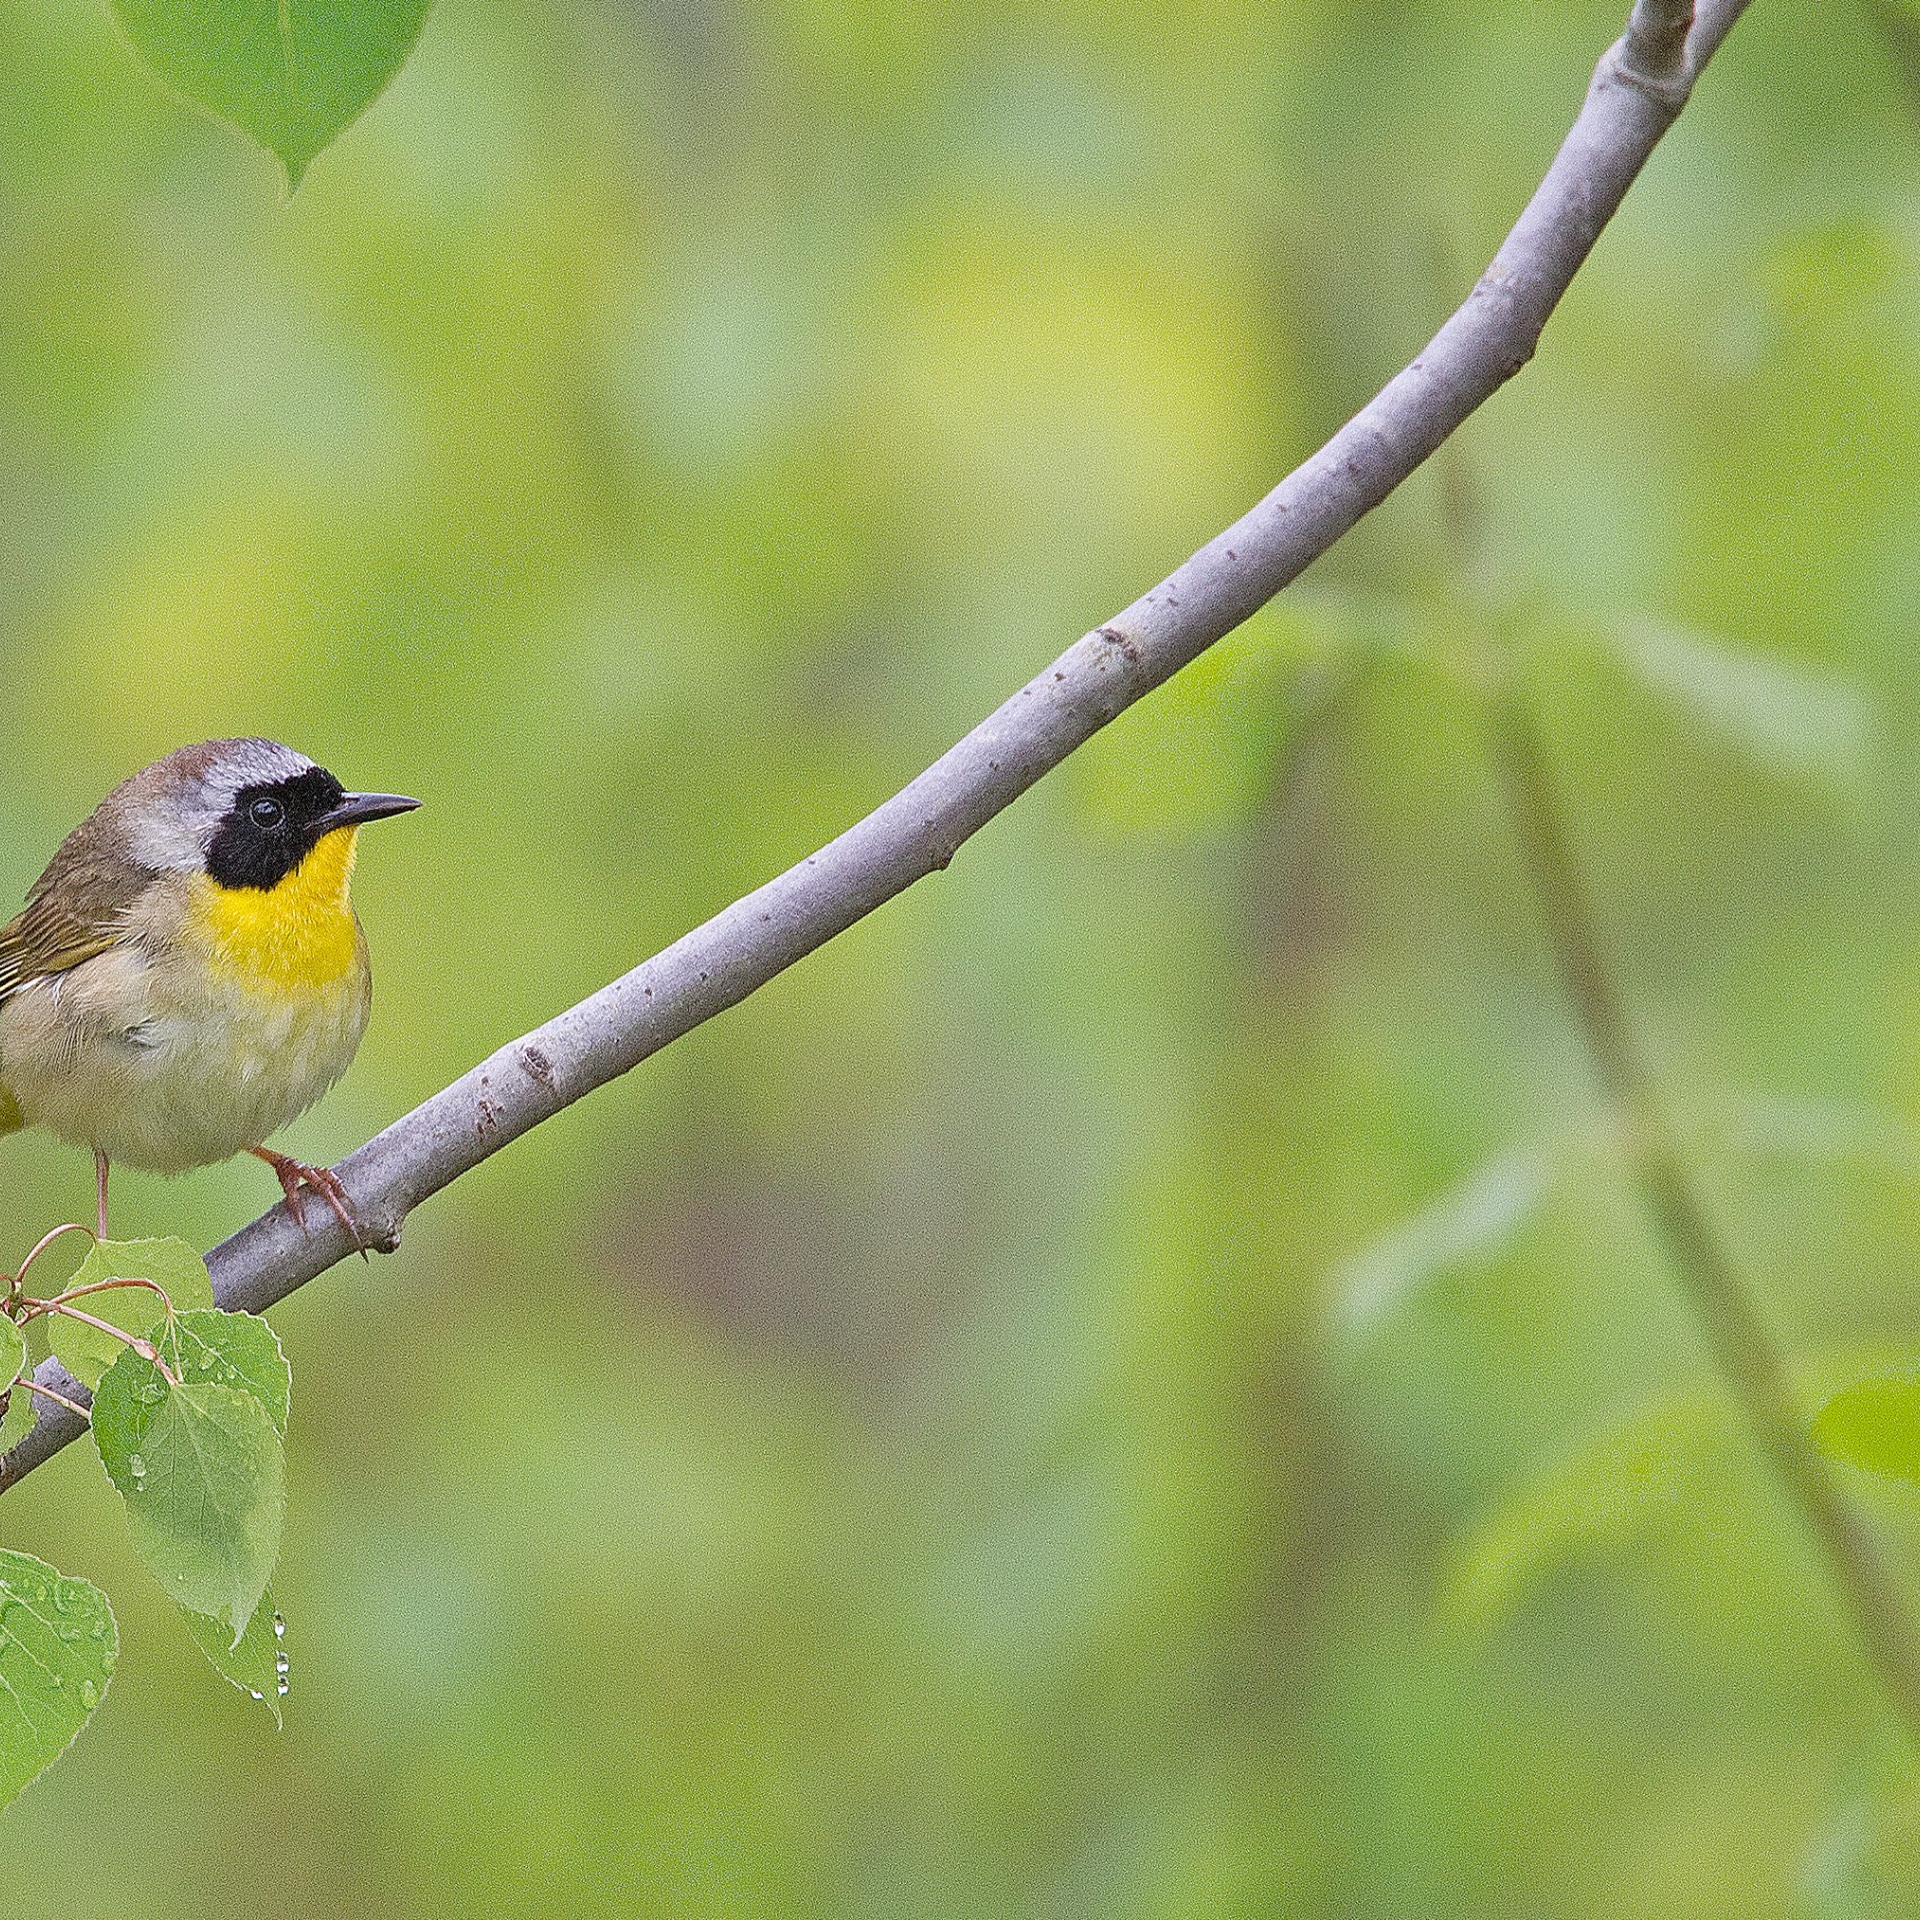 Common yellowthroat warbler in Quaking aspen.